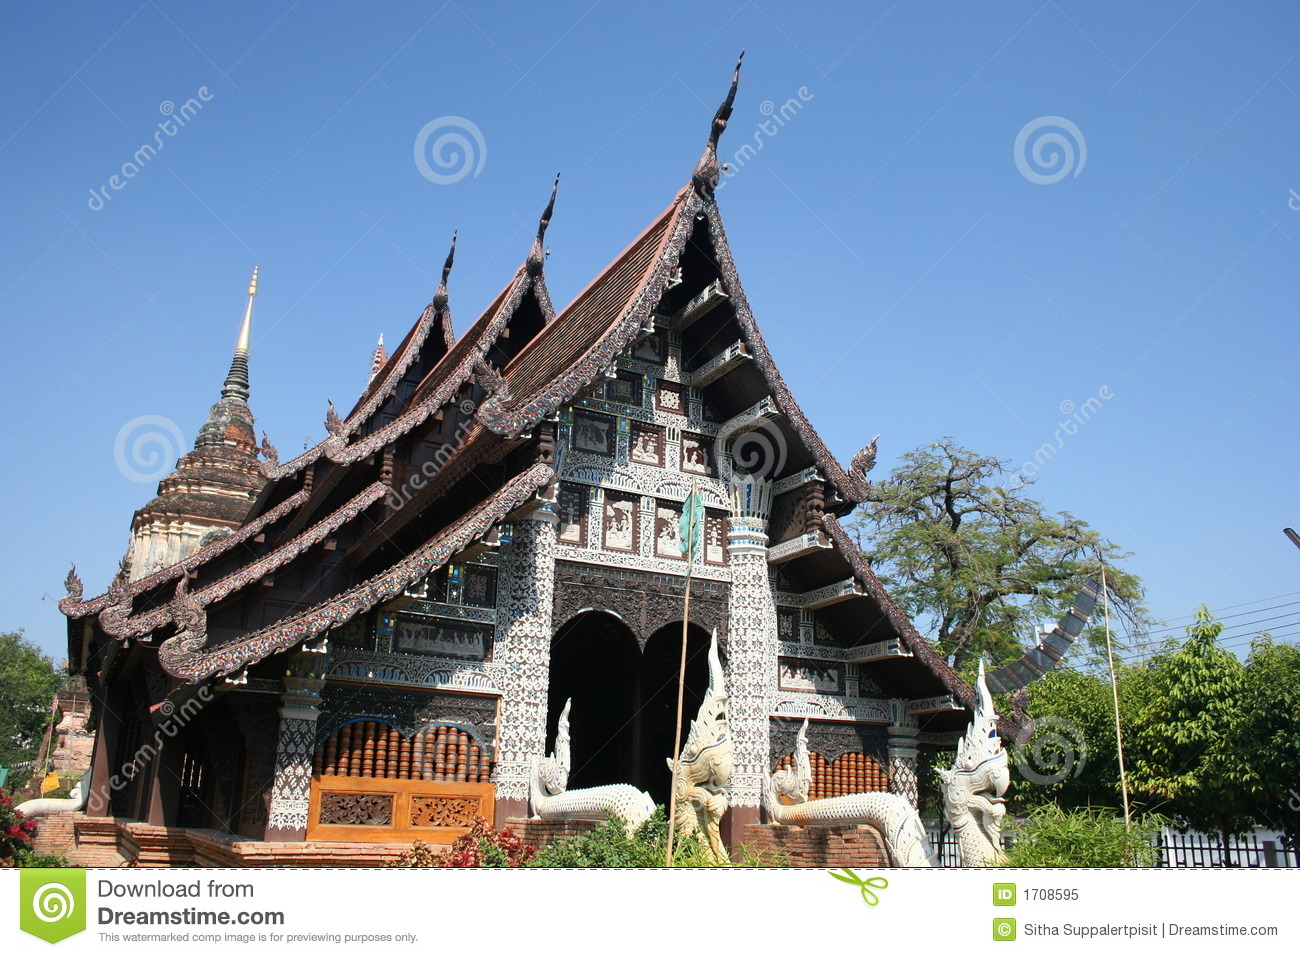 Wat Lok Molee, Chiang Mai, Thailand Royalty Free Stock Photo - Image: 1708595